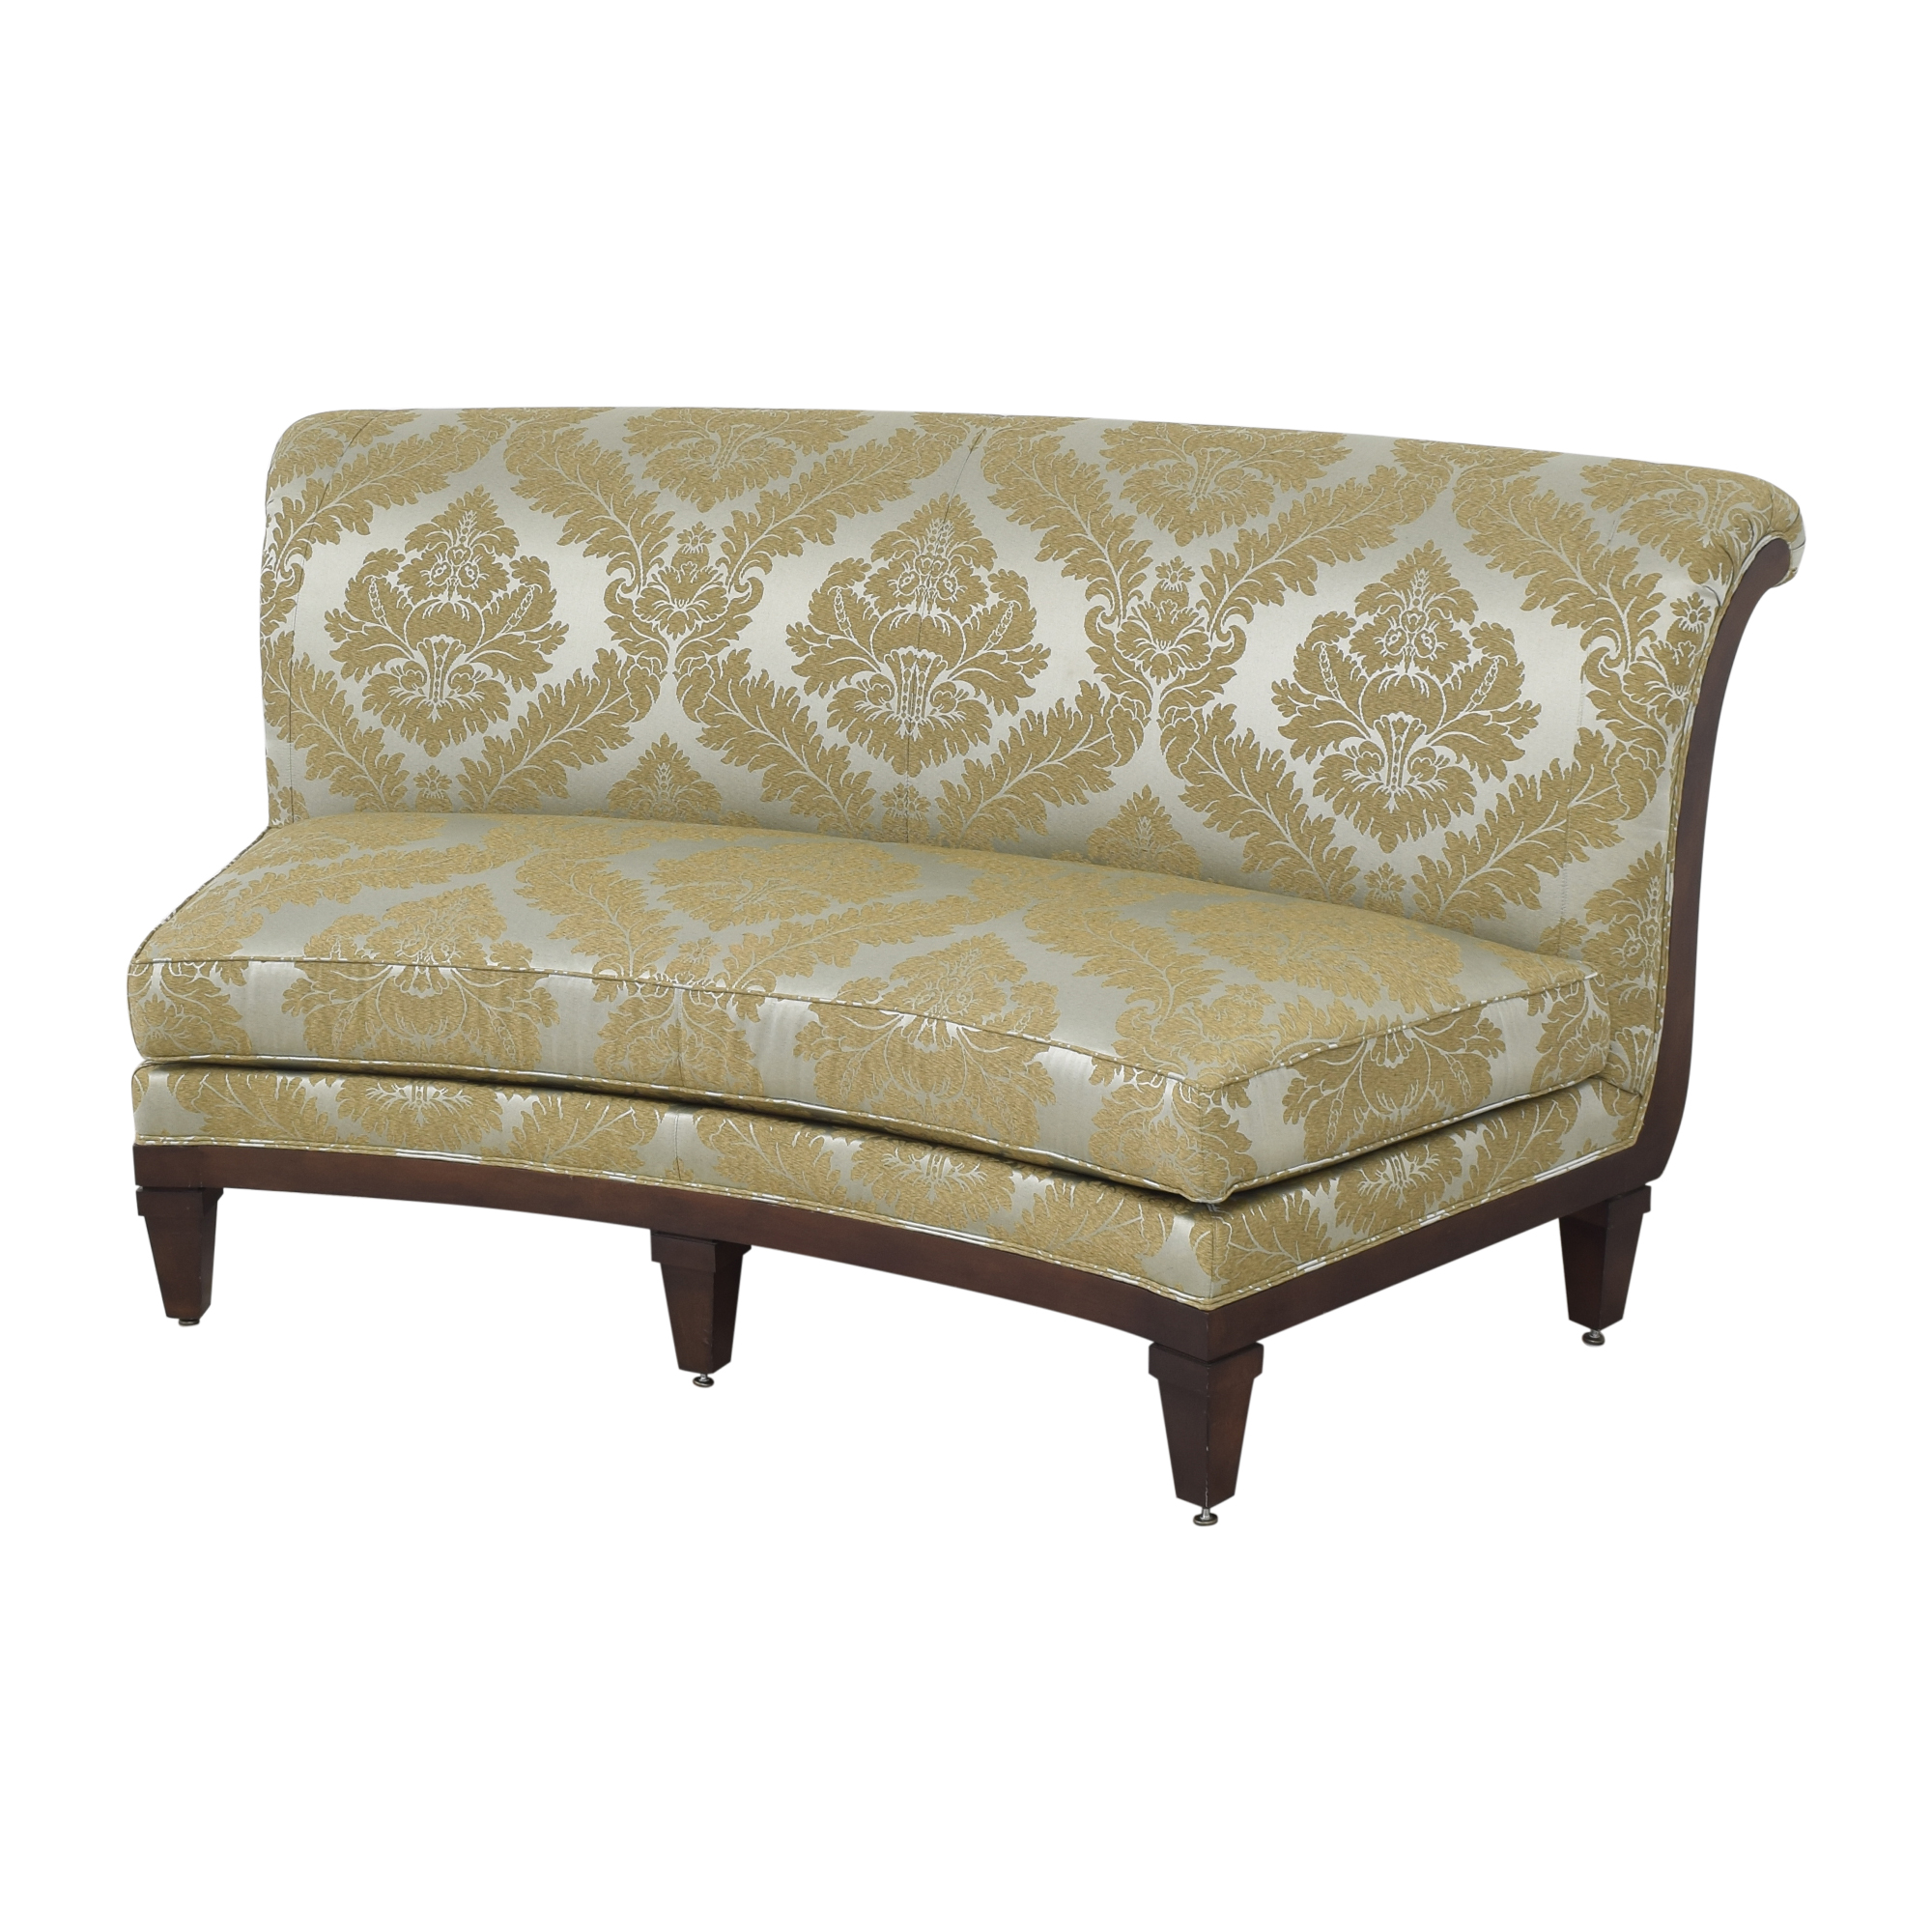 Drexel Heritage Drexel Heritage Curved Banquette used